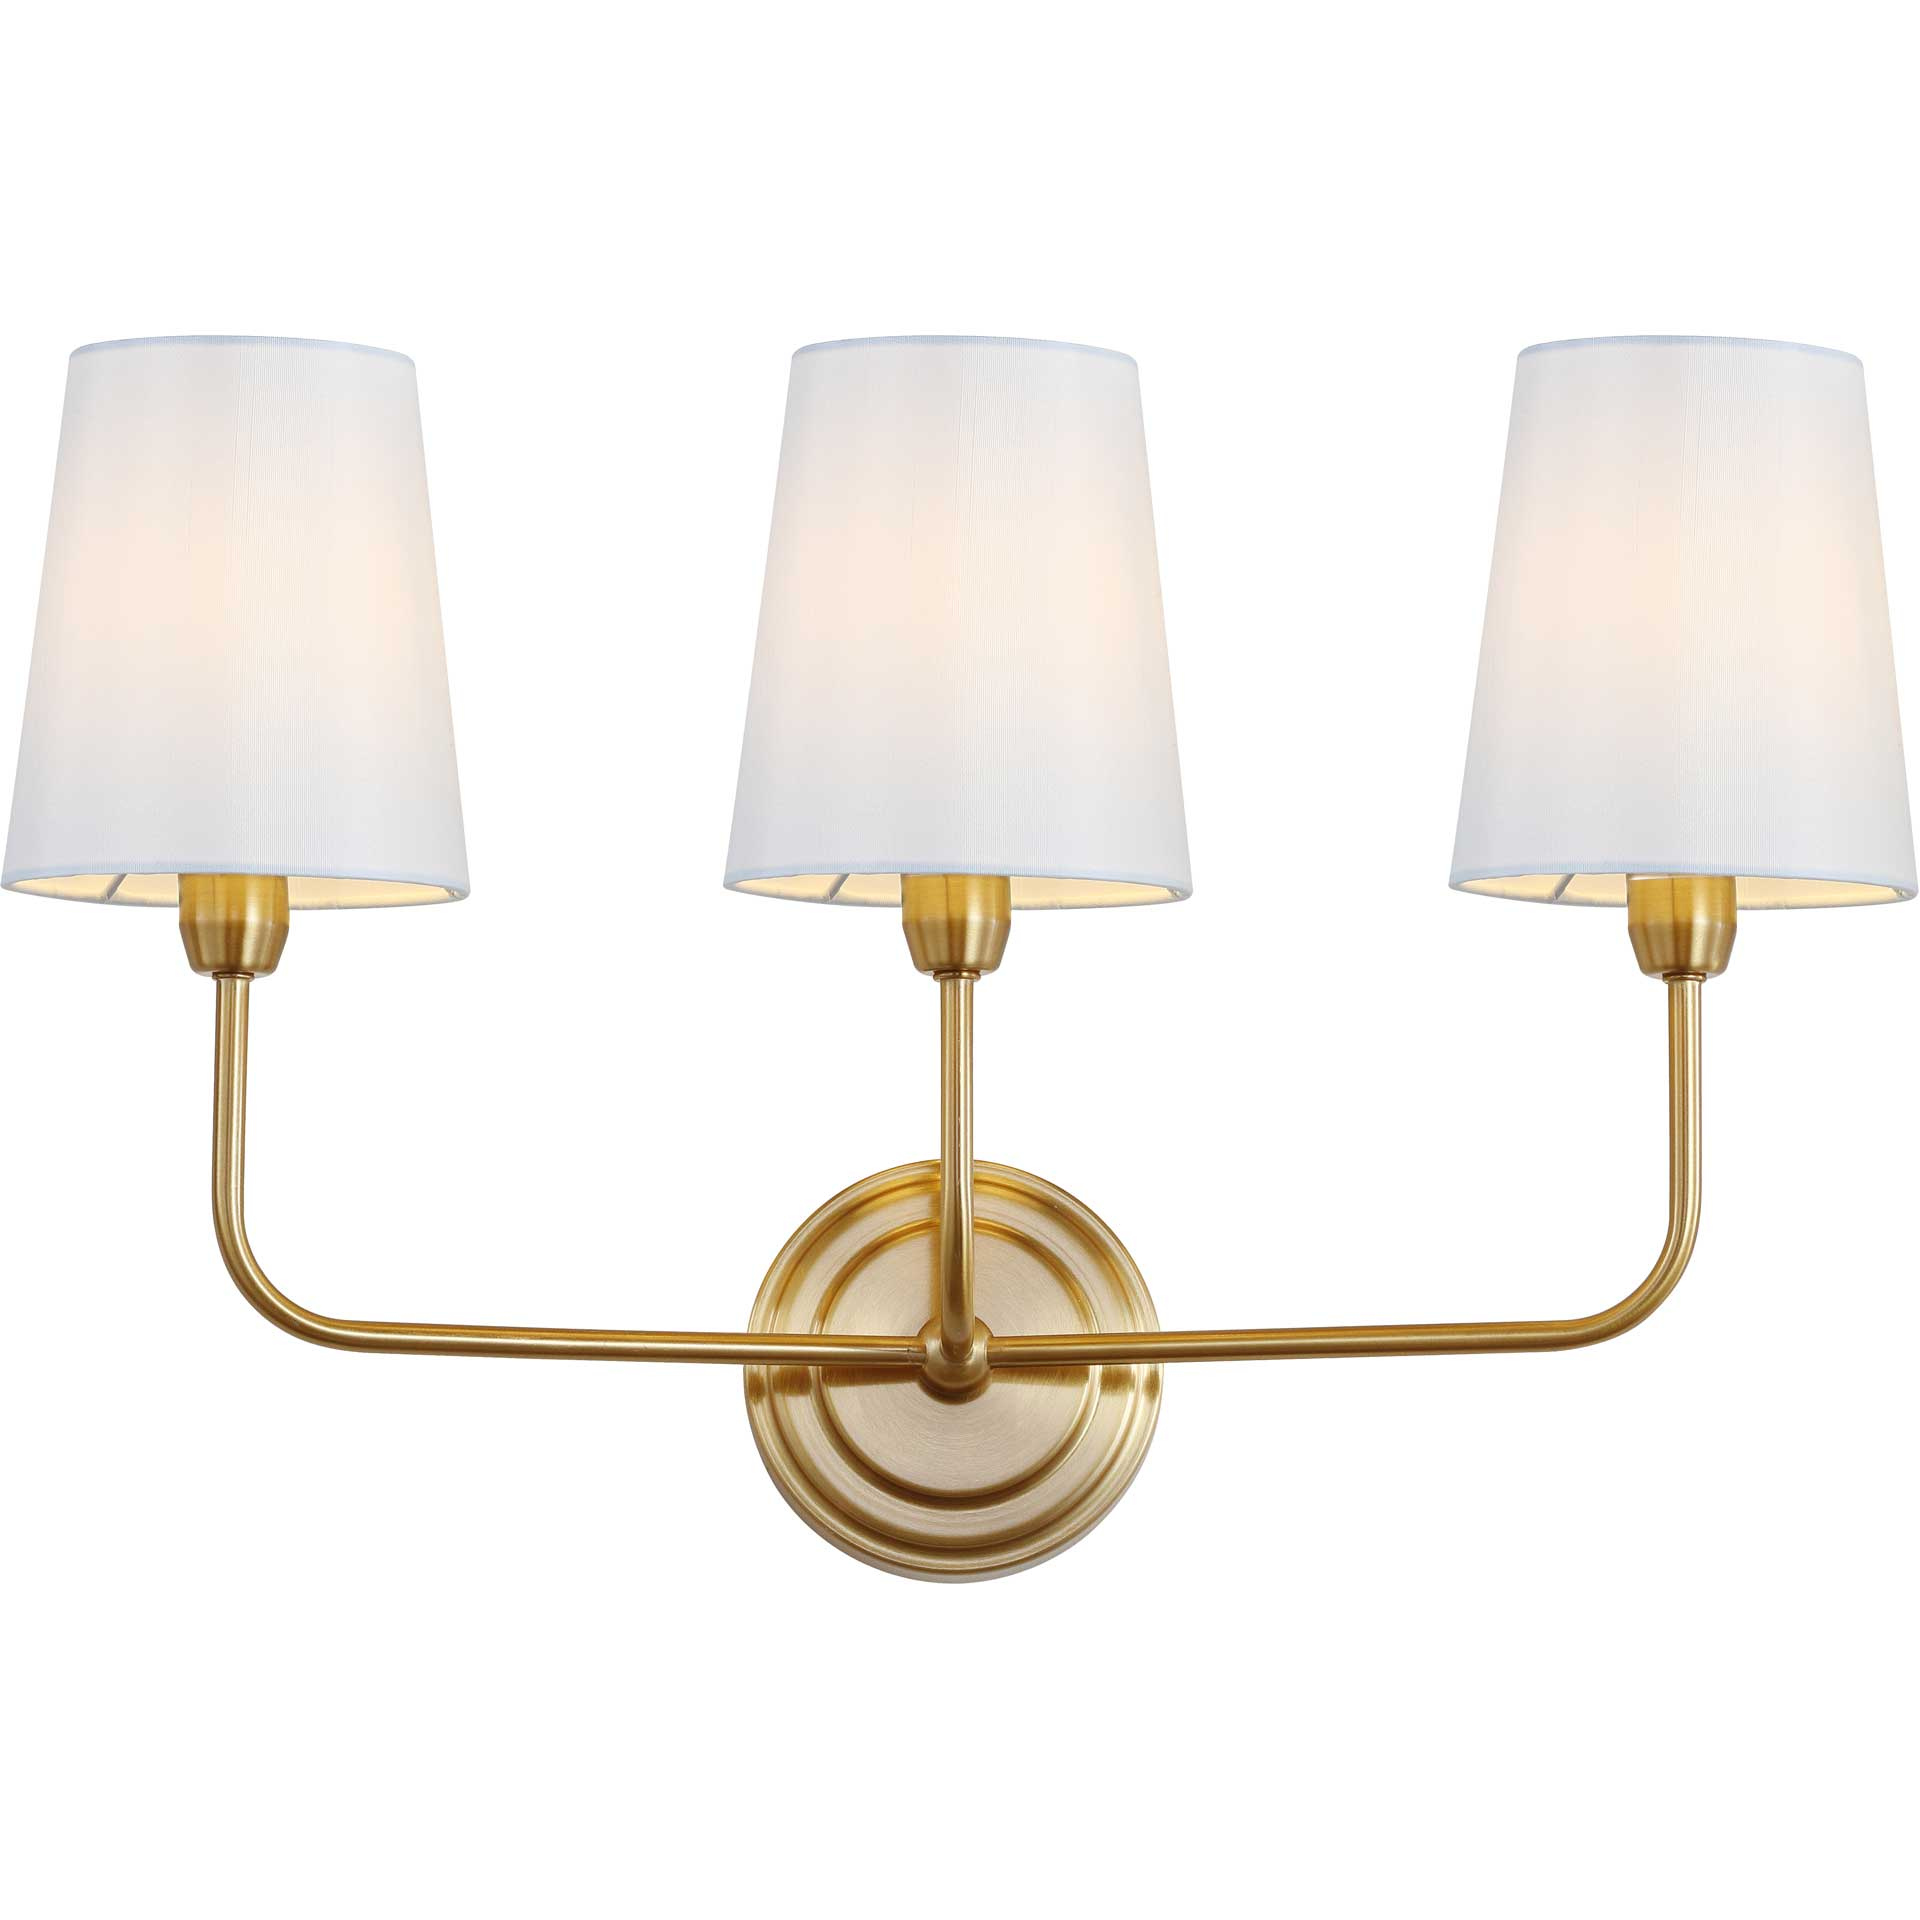 Saga Three Light Wall Sconce Brass Gold